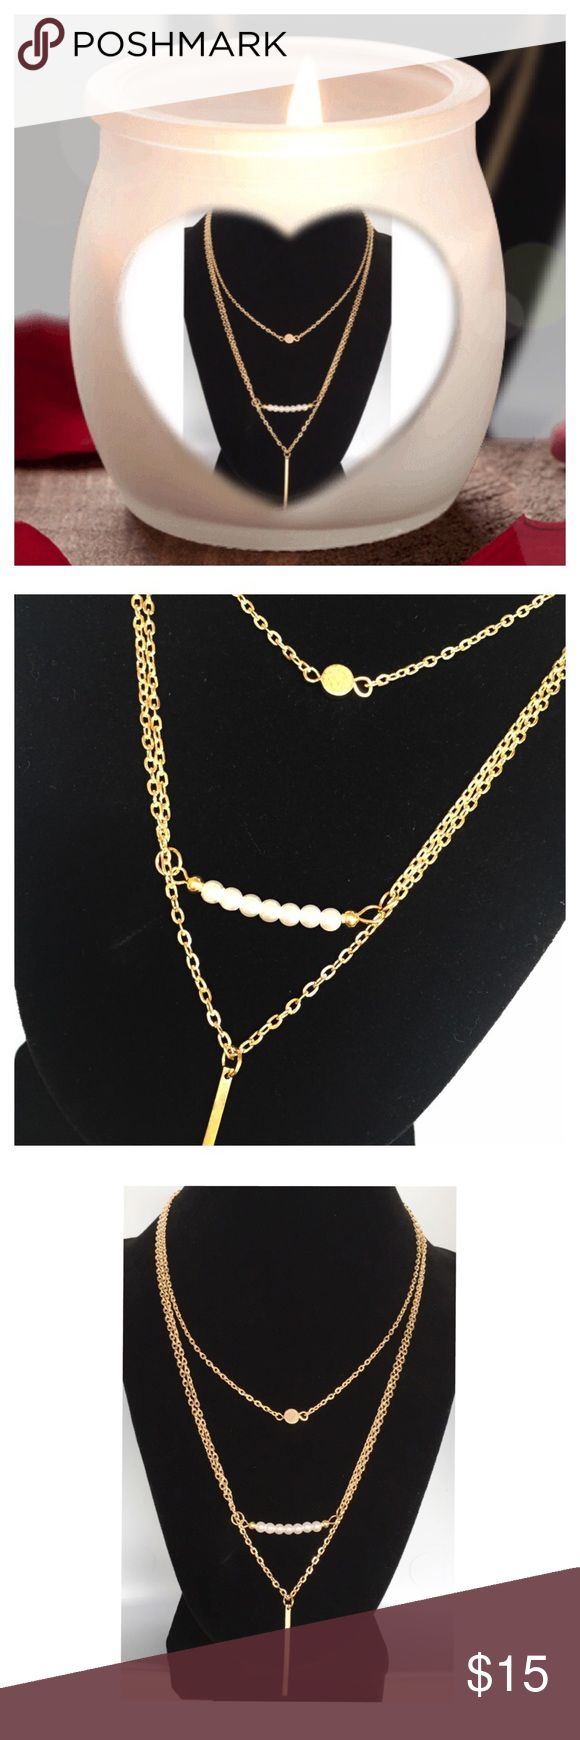 ⚪️ BOGO 1/2 OFF New Wila 3 Layer Chain Necklace Gorgeous 3-layer necklace...gold plated metal alloy...super versatile neutral necklace that you'll be sure to get a ton of wear out of! Wila Jewelry Necklaces